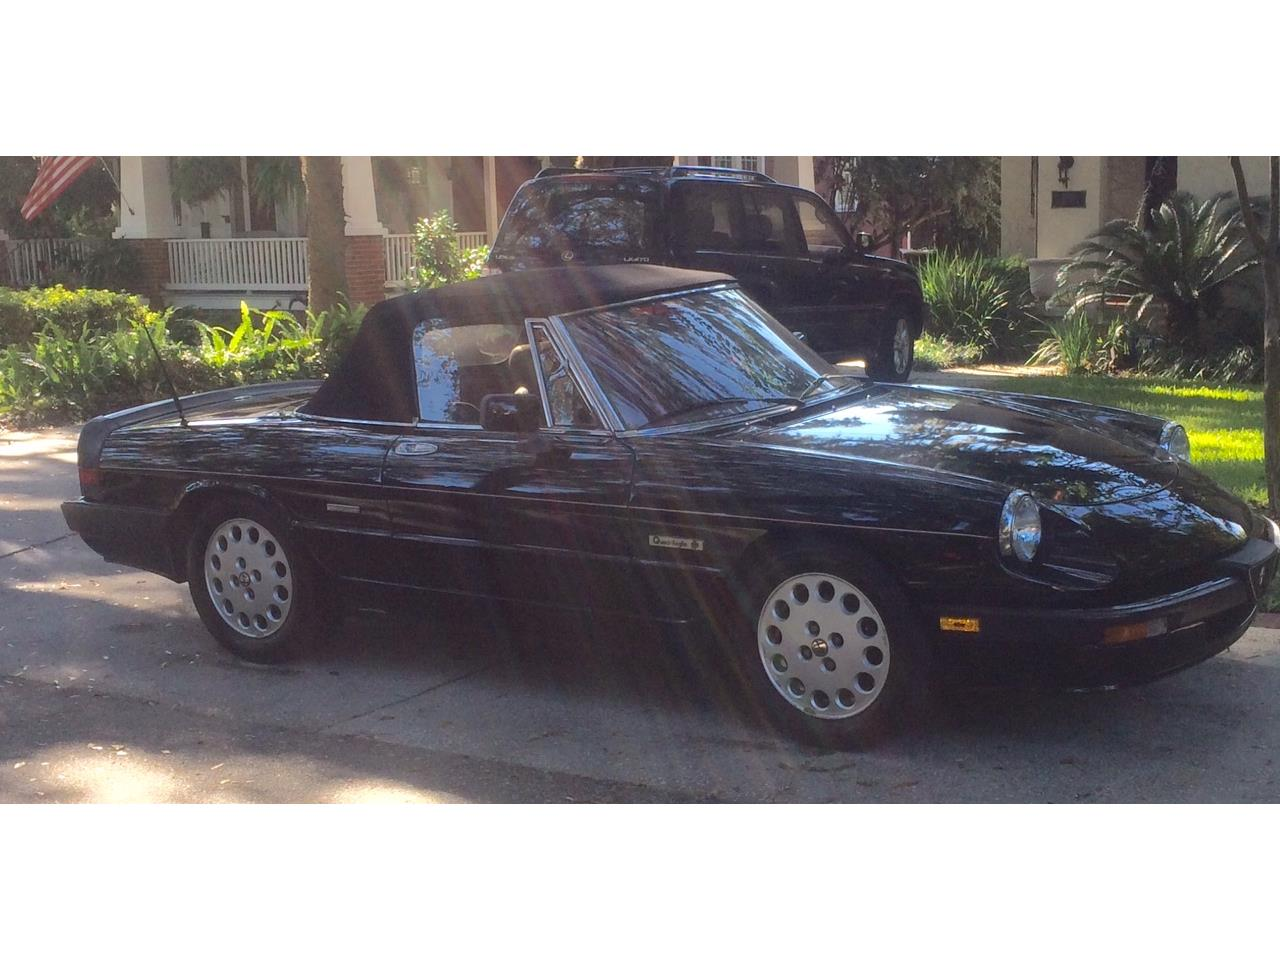 Large Picture of 1988 Alfa Romeo Spider Quadrifoglio located in Florida - $15,900.00 Offered by a Private Seller - JDBJ